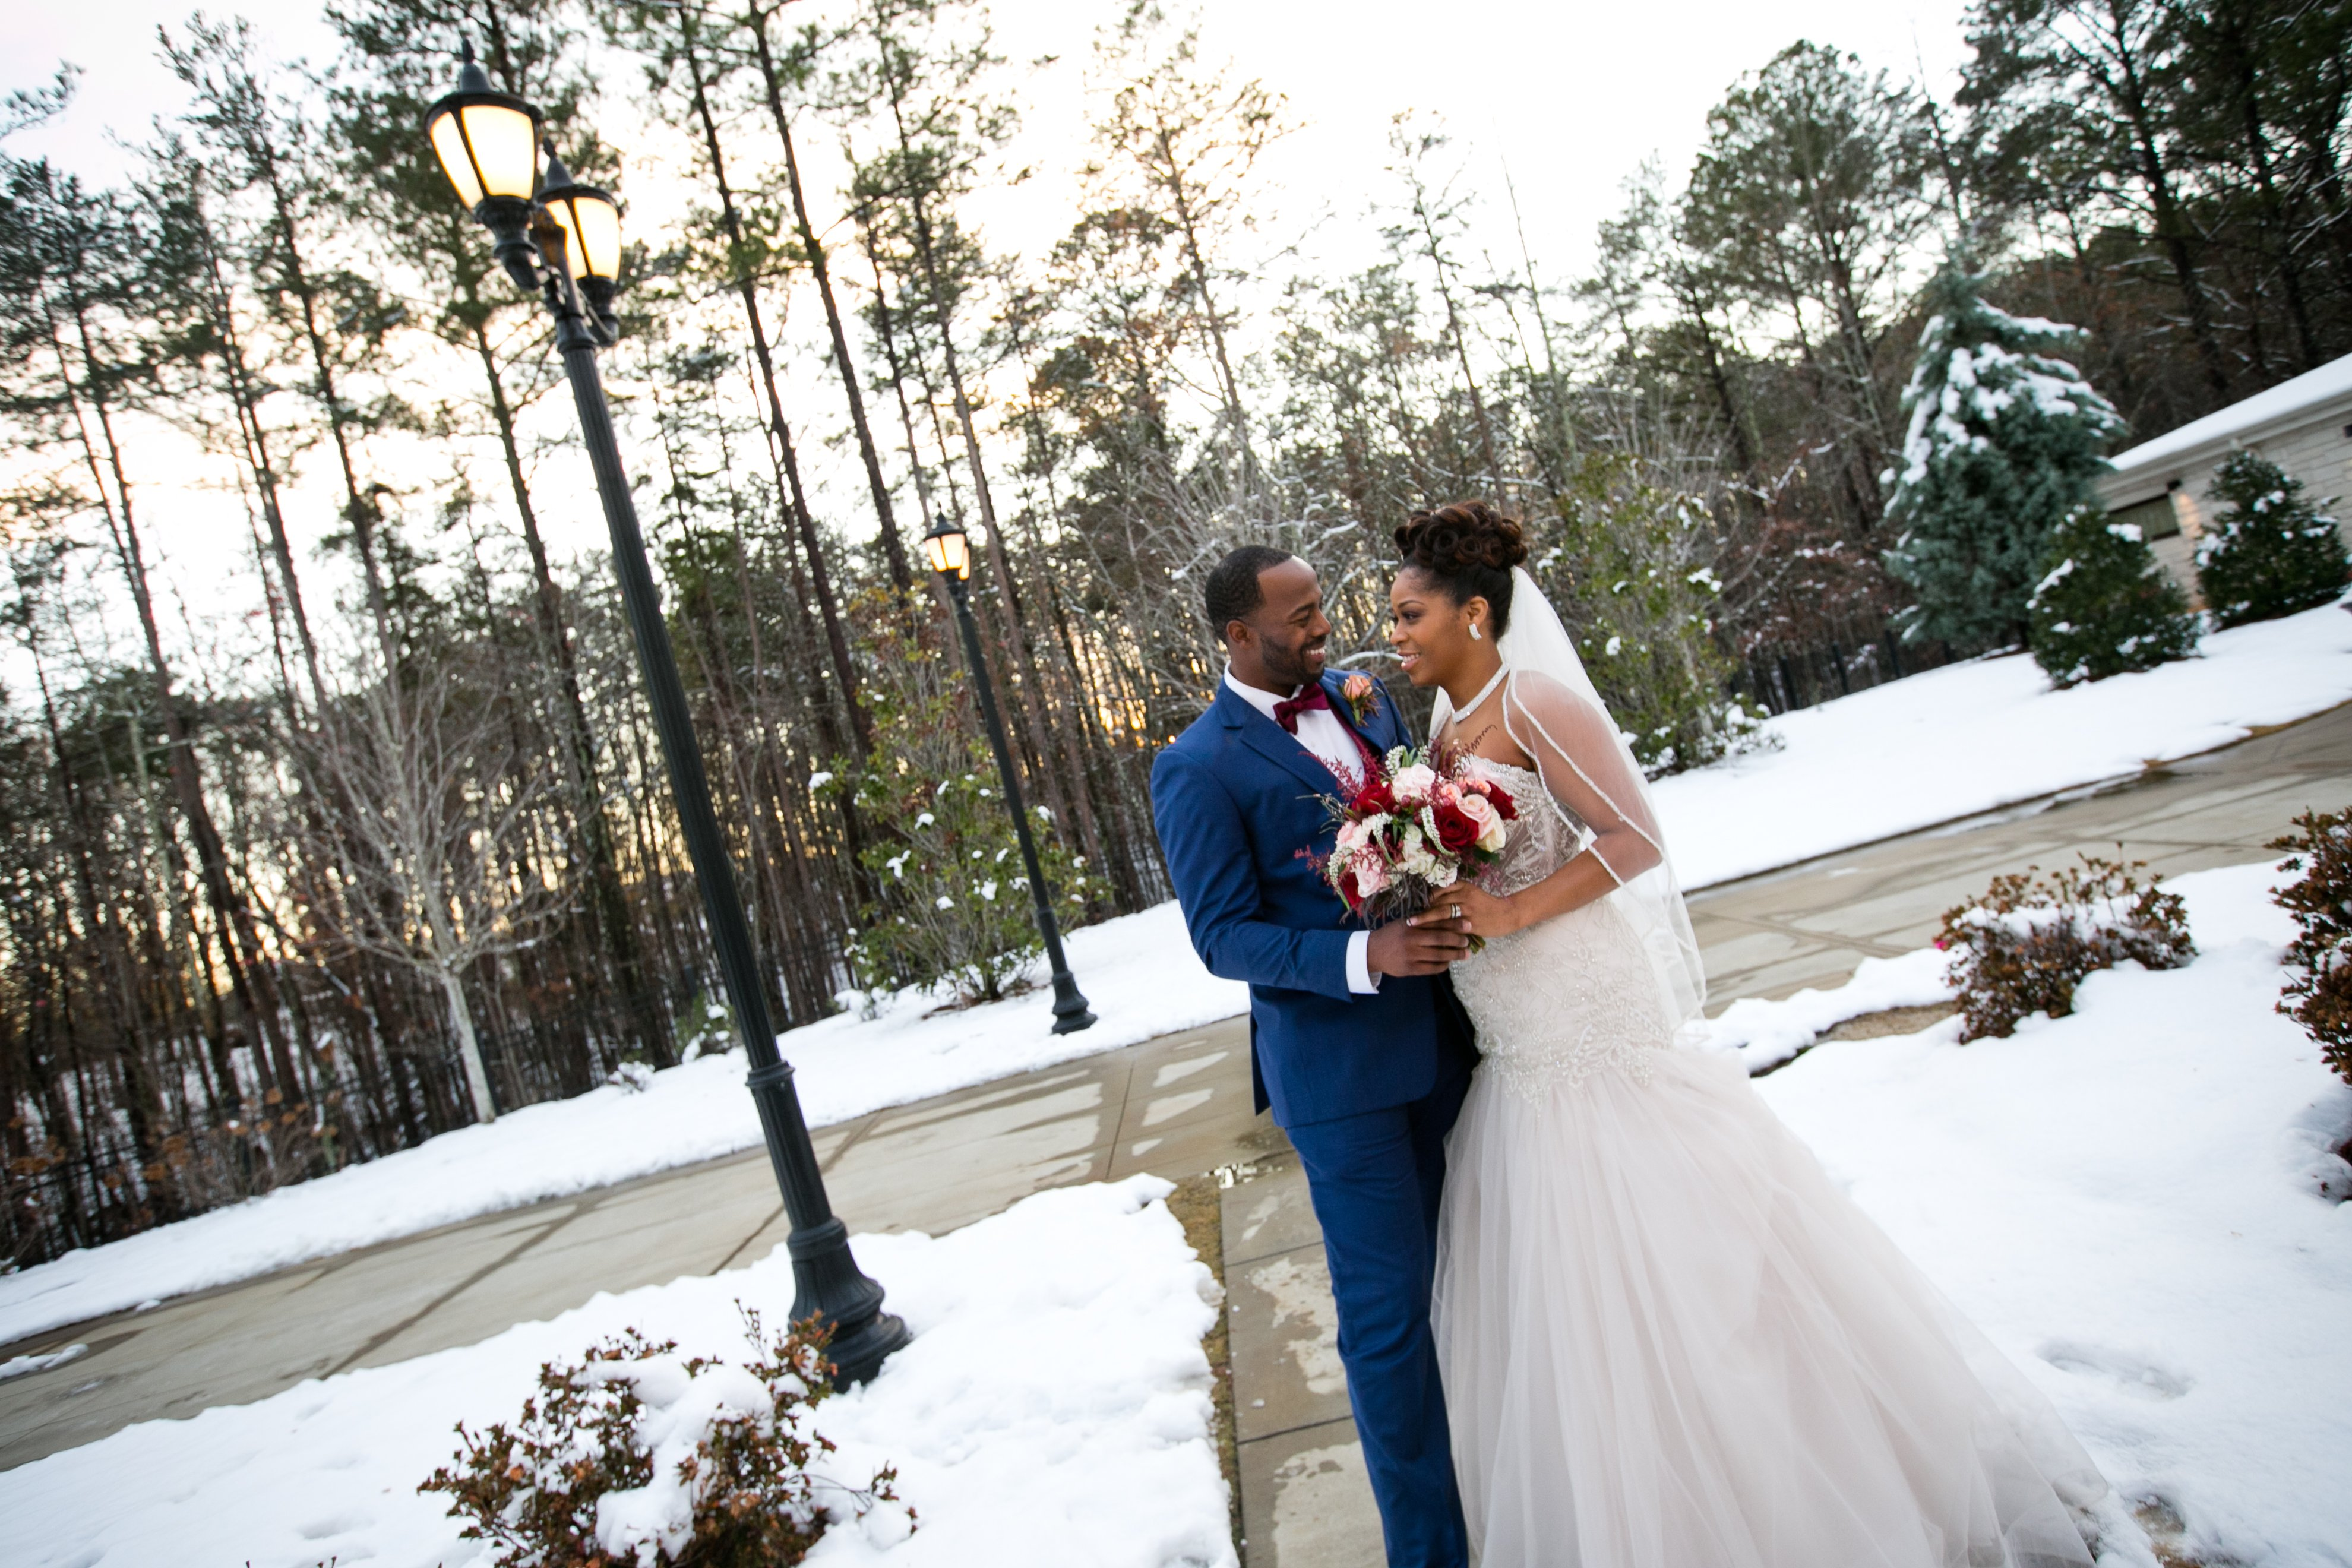 Wedding Pictures In The Snow | Wedding: Martrez and Kisha | Wedding: Martrez and Kisha | LeeHenry Events